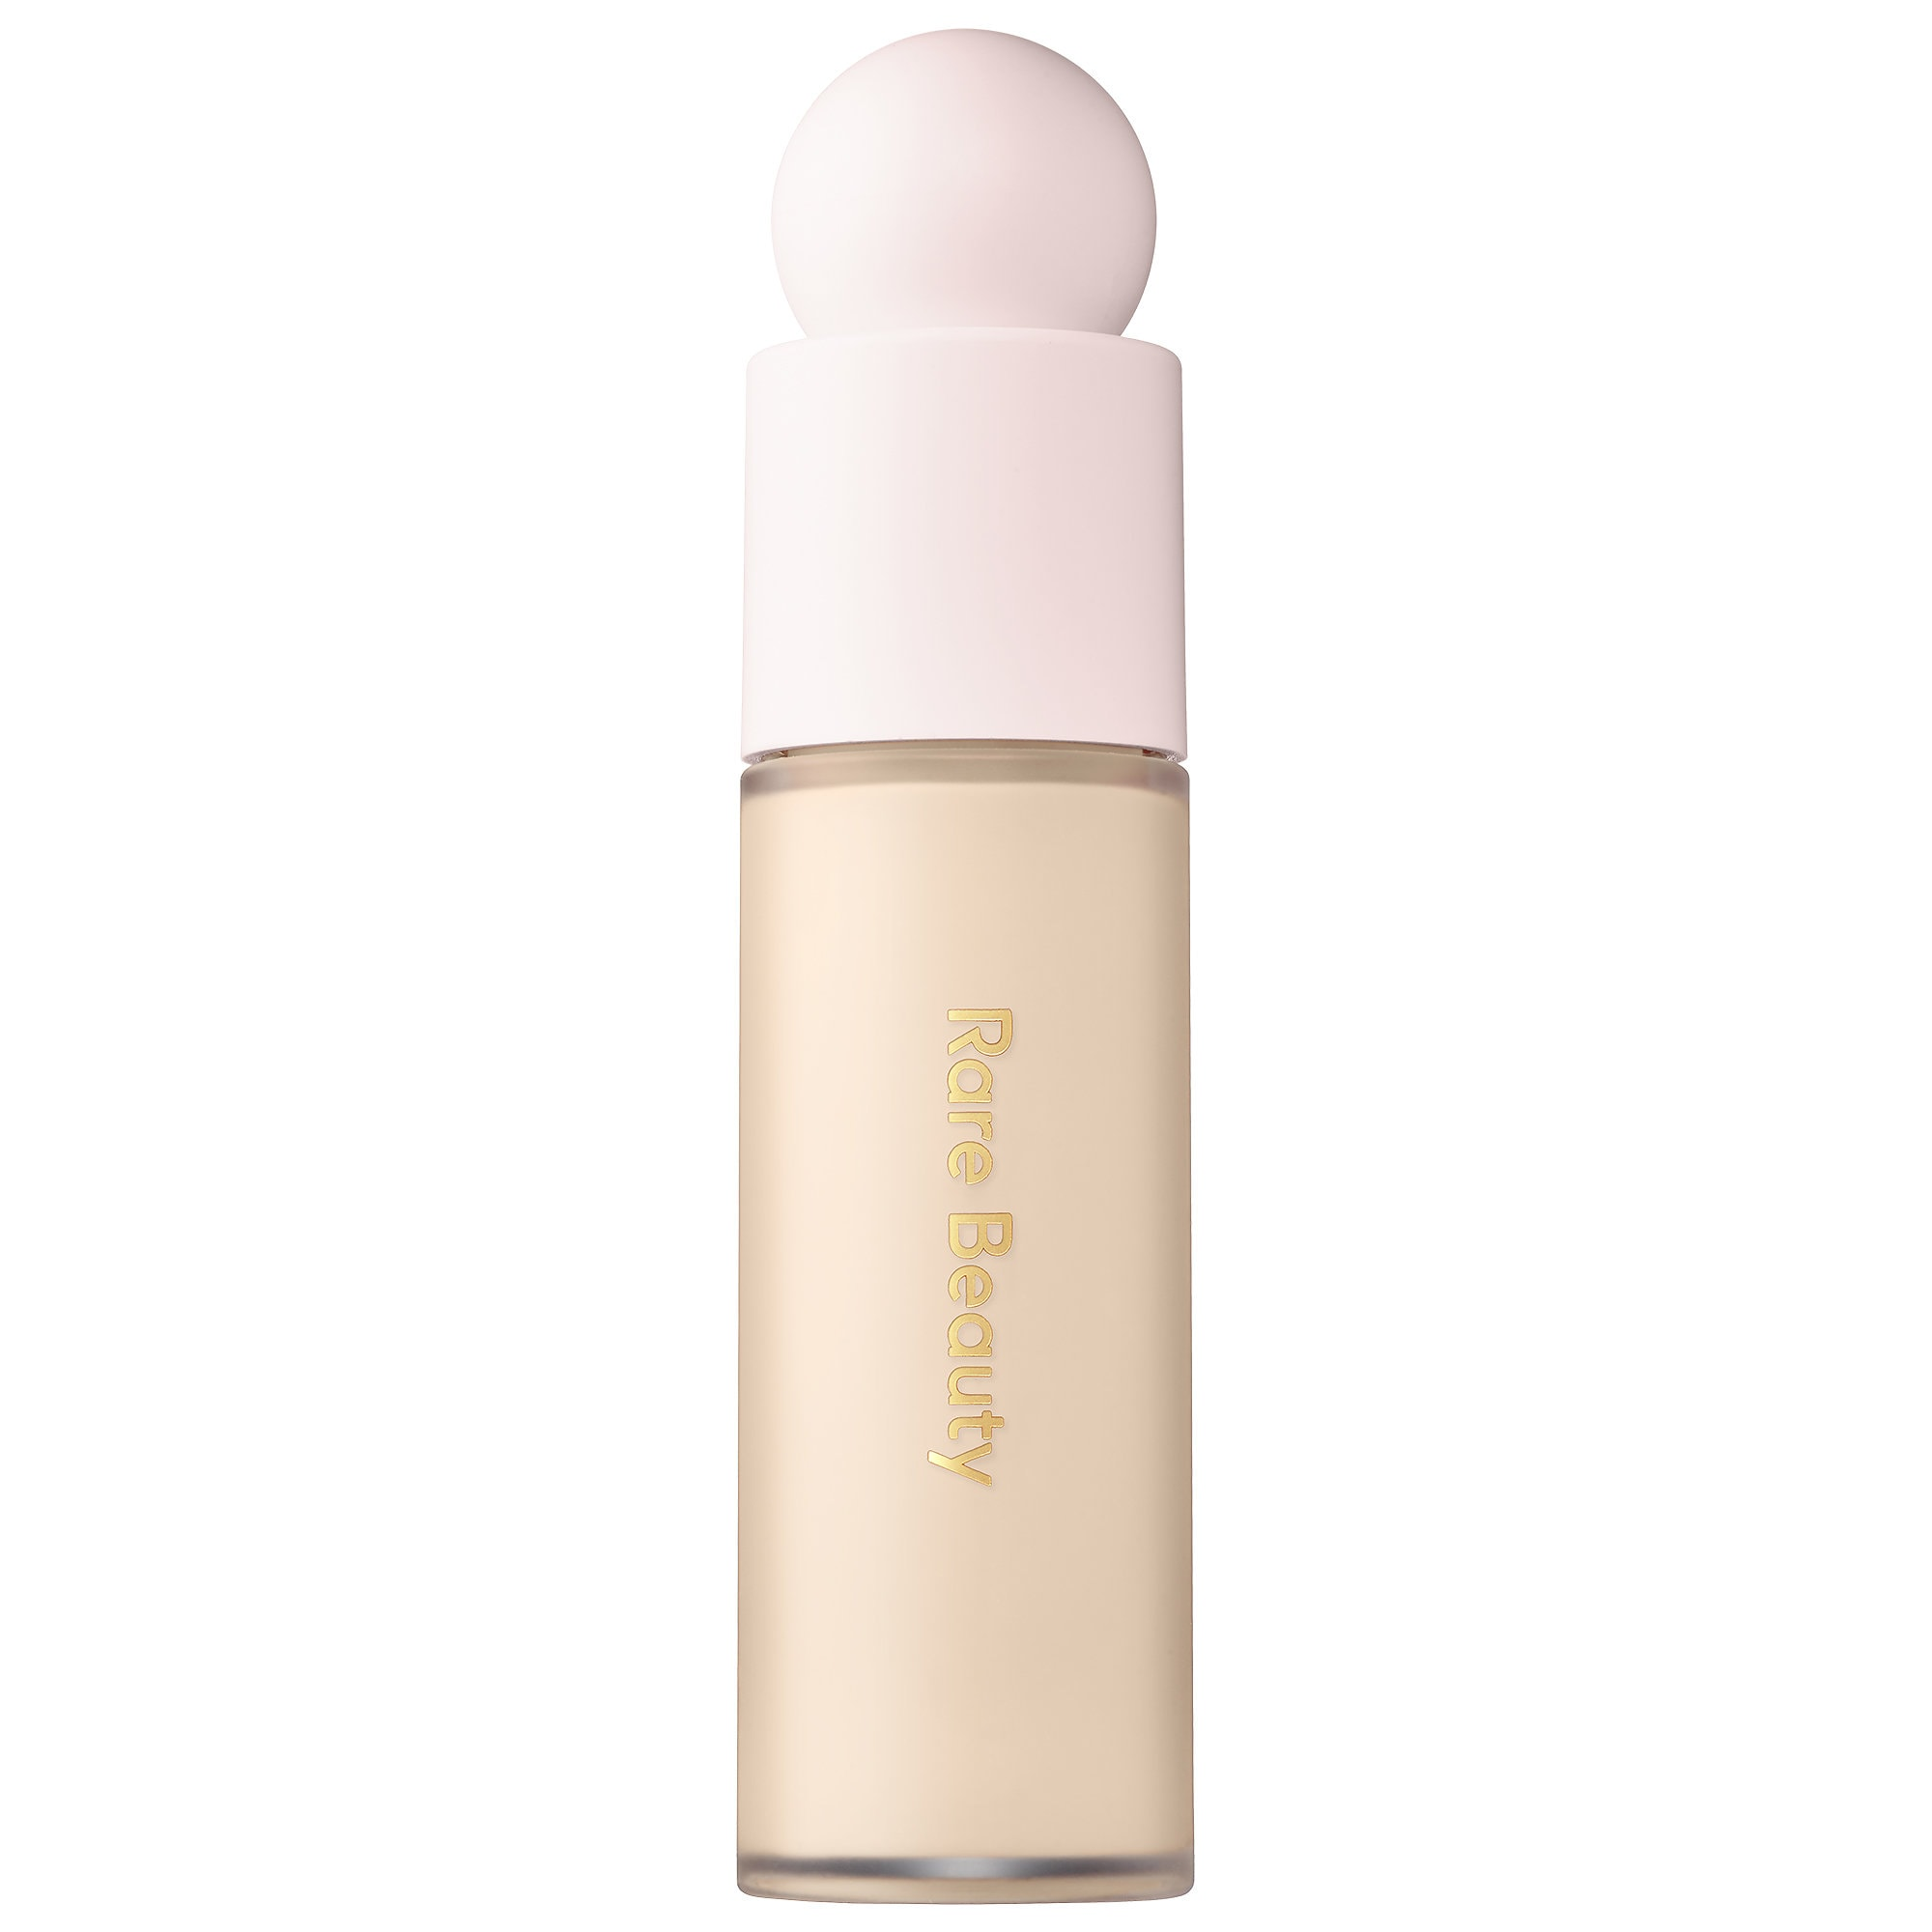 Rare Beauty by Selena Gomez - Liquid Touch Weightless Foundation